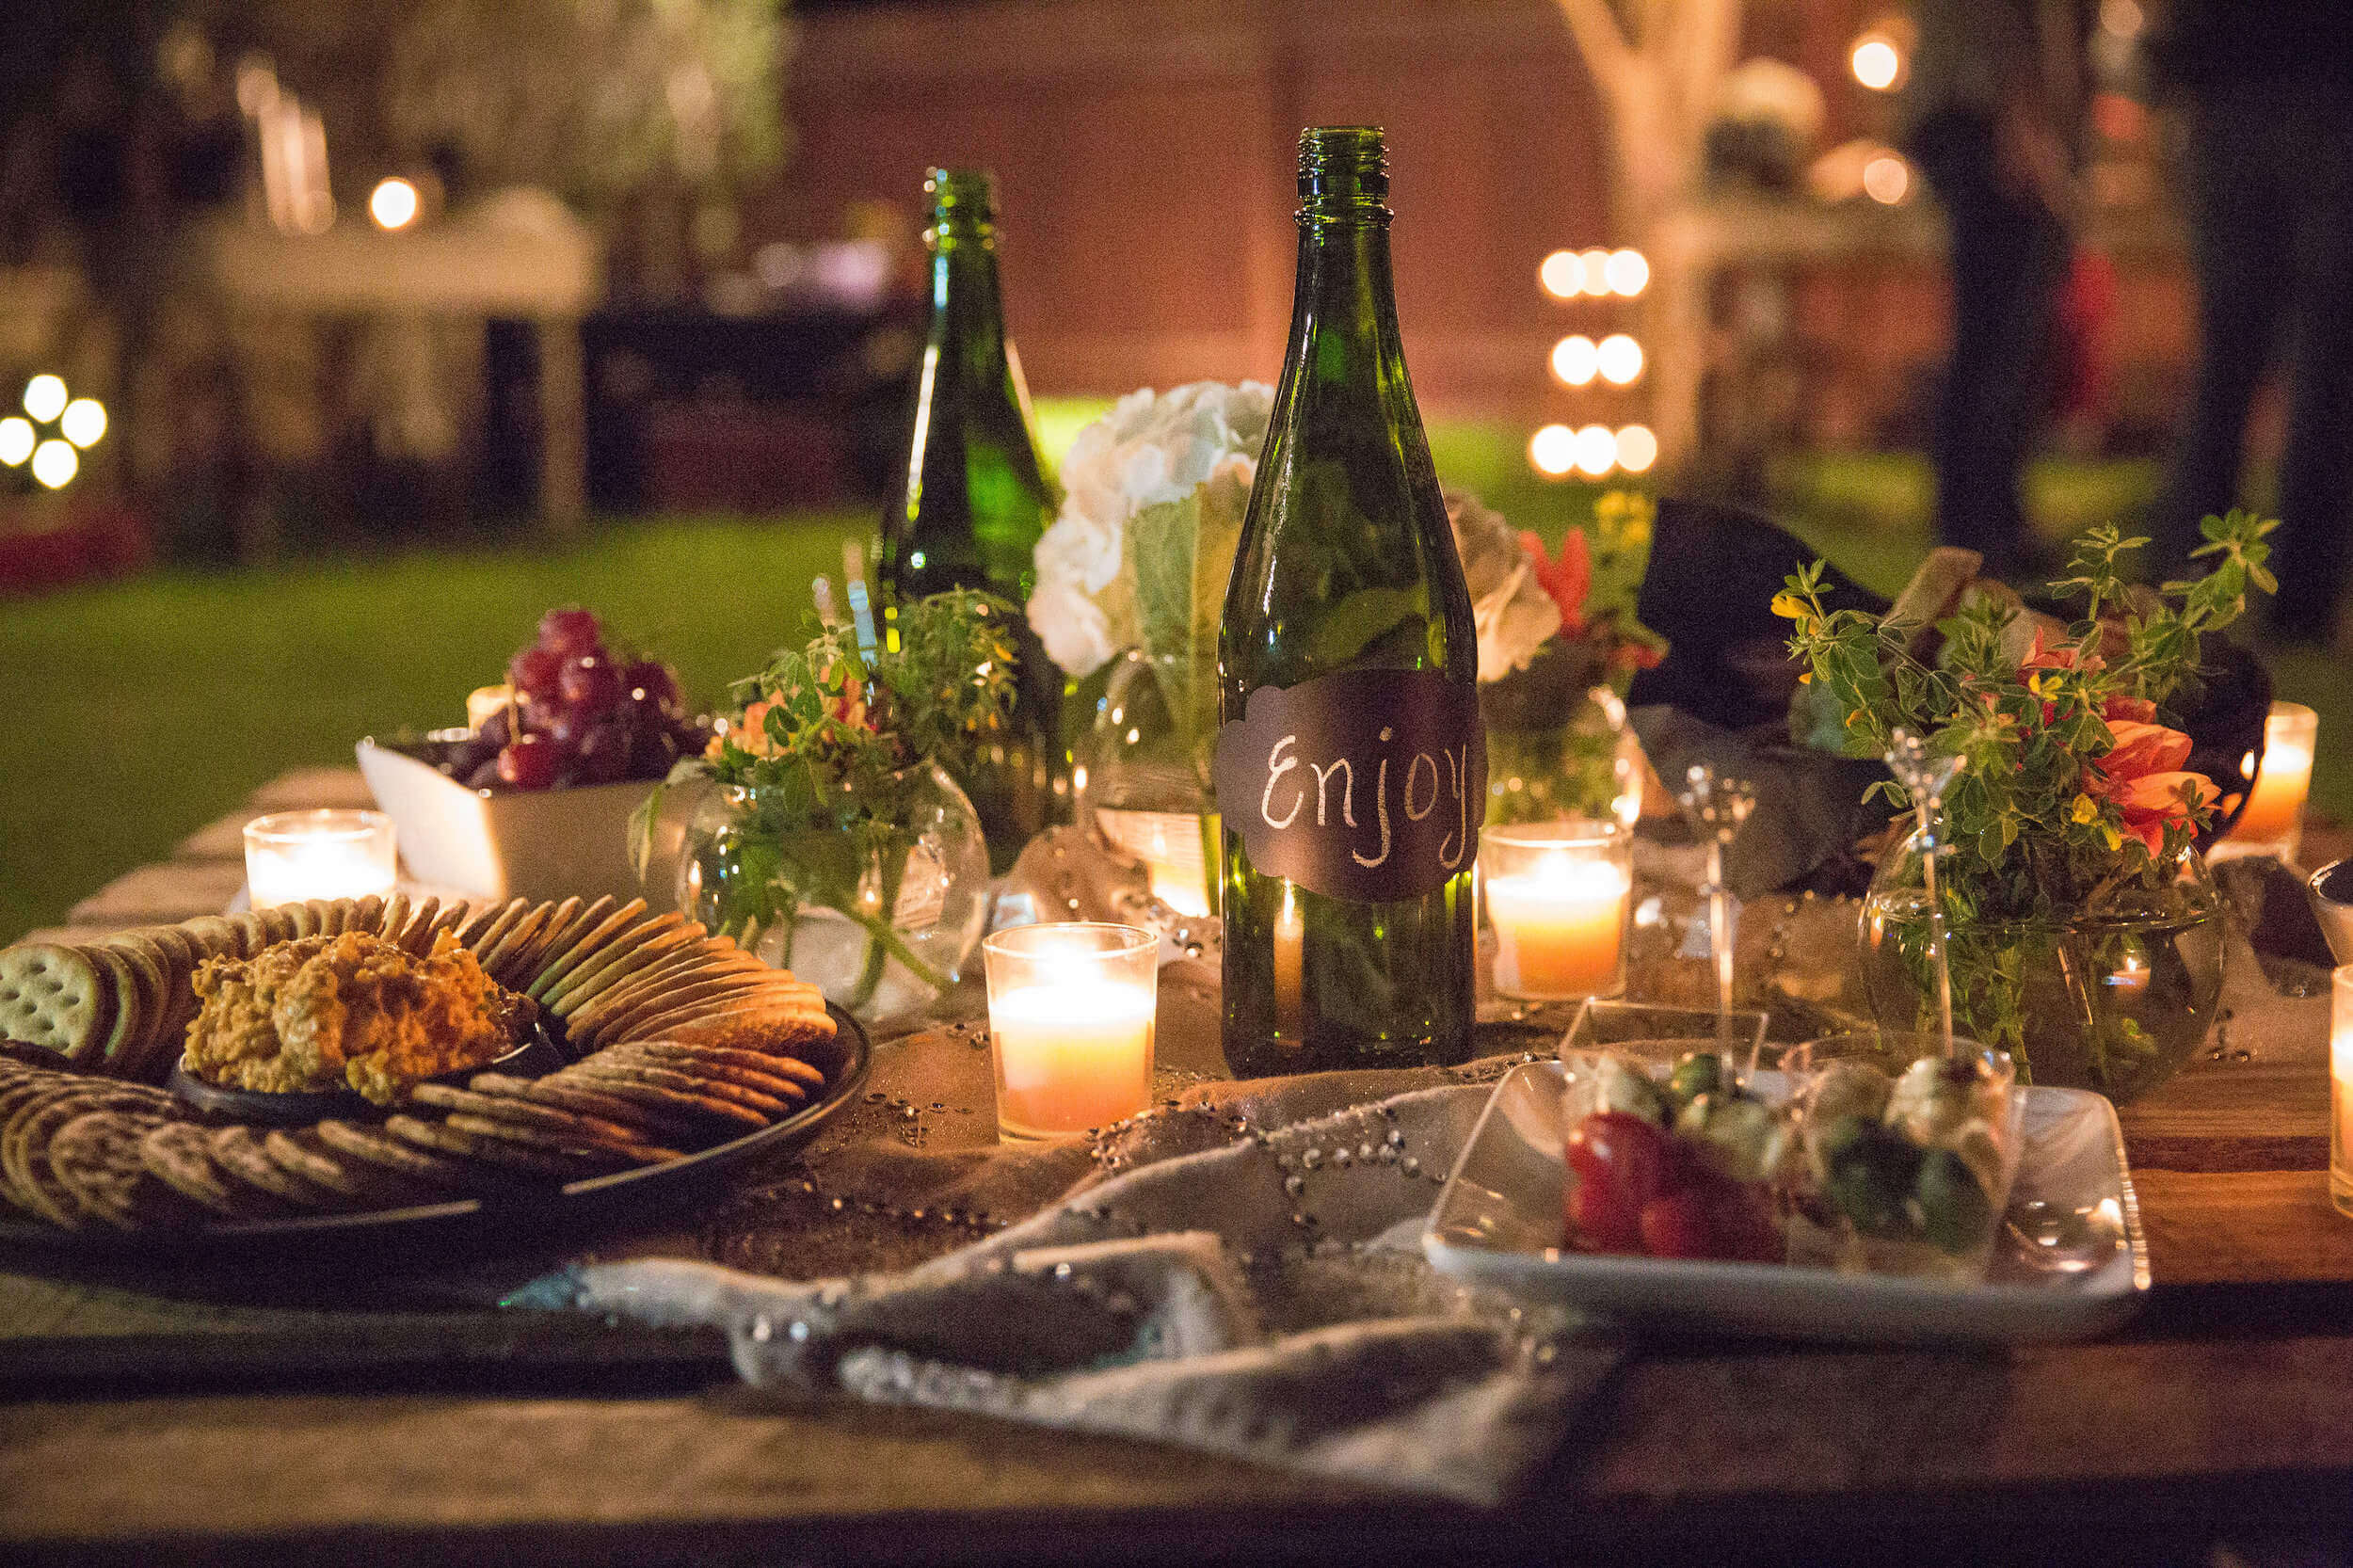 Rustic Cheese and Wine Dinner Party -